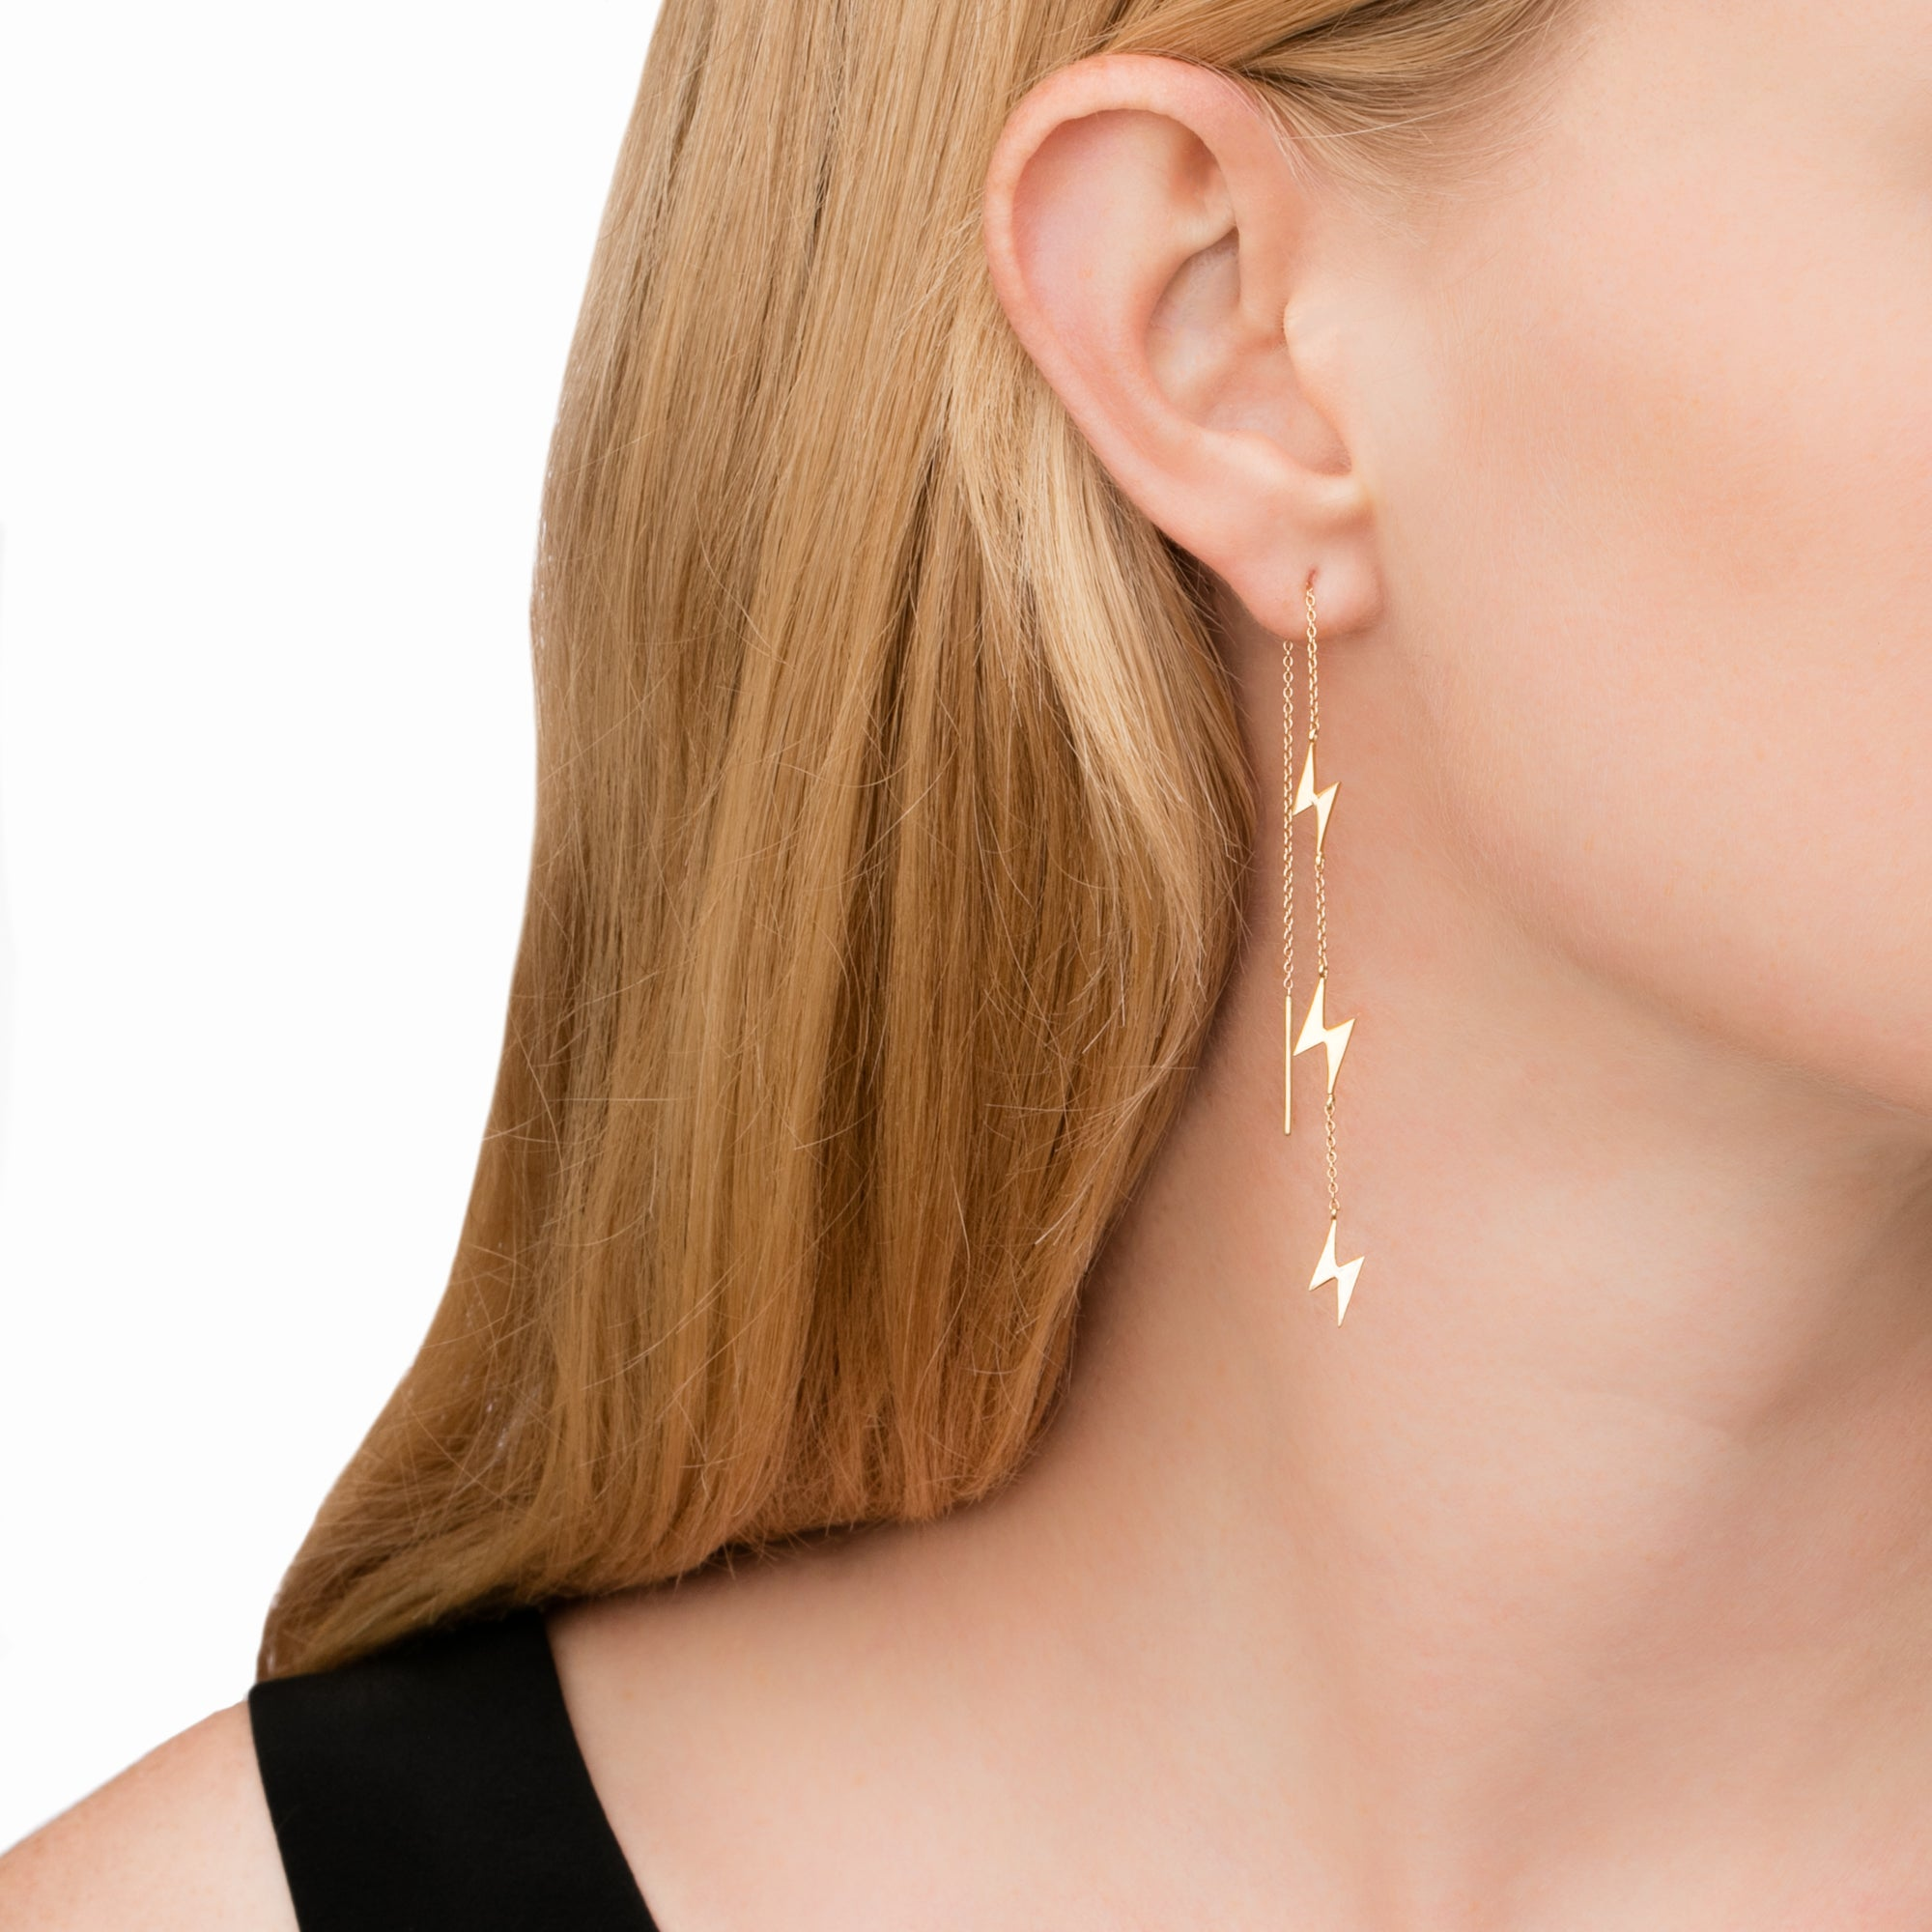 Lightning Bolt Pull Through Earring - Suel - Earrings | Broken English Jewelry